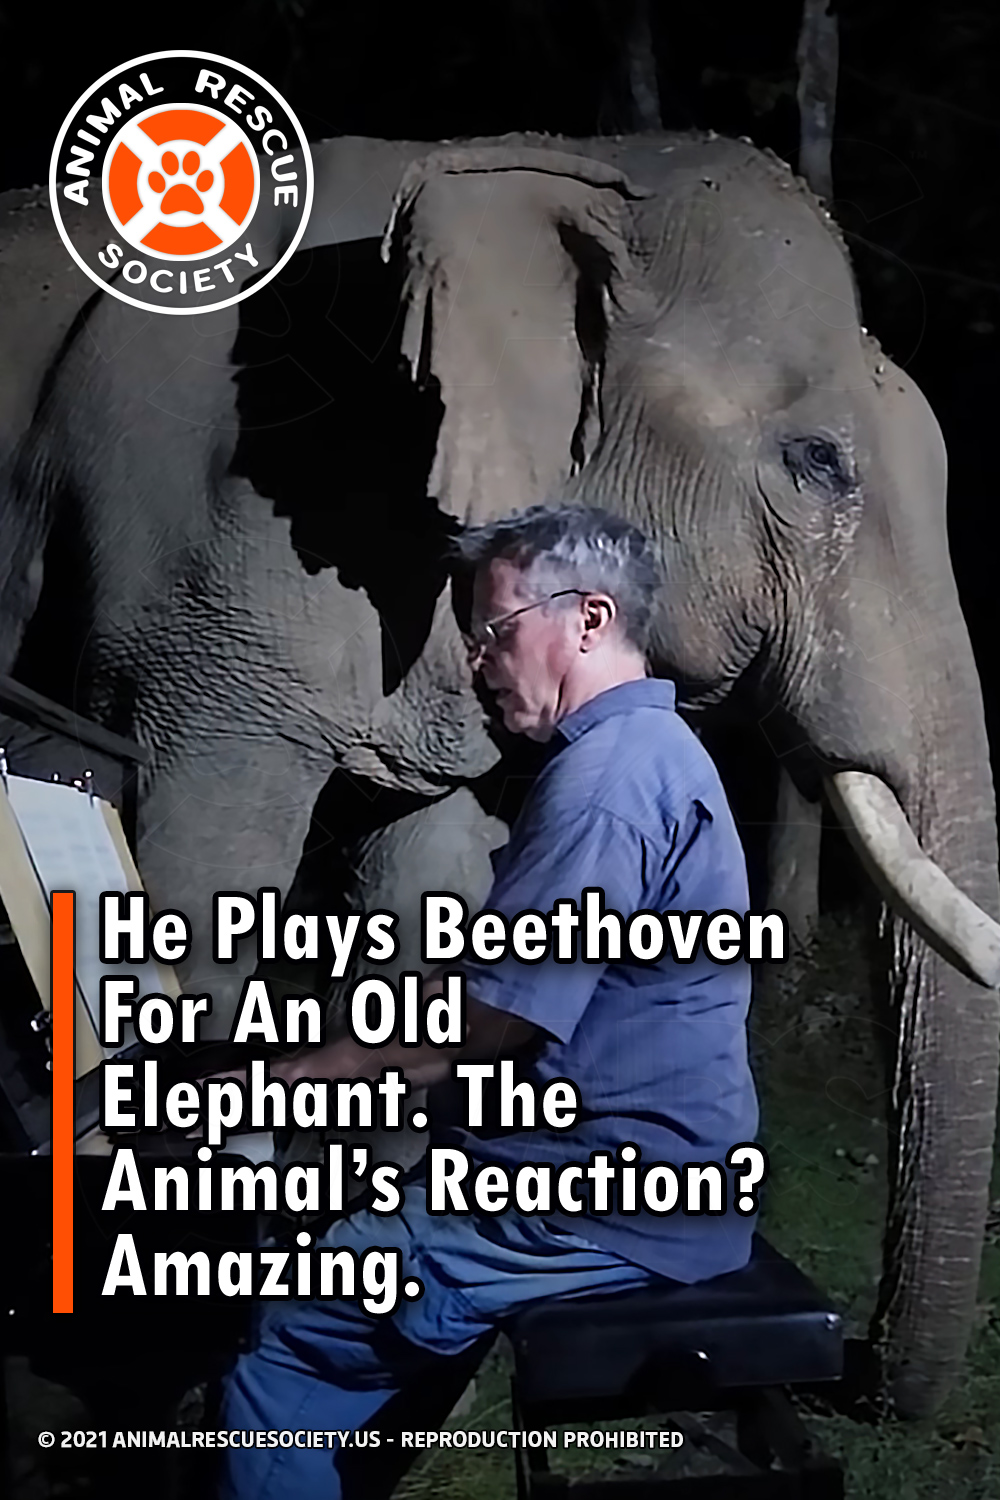 He Plays Beethoven For An Old Elephant. The Animal's Reaction? Amazing.